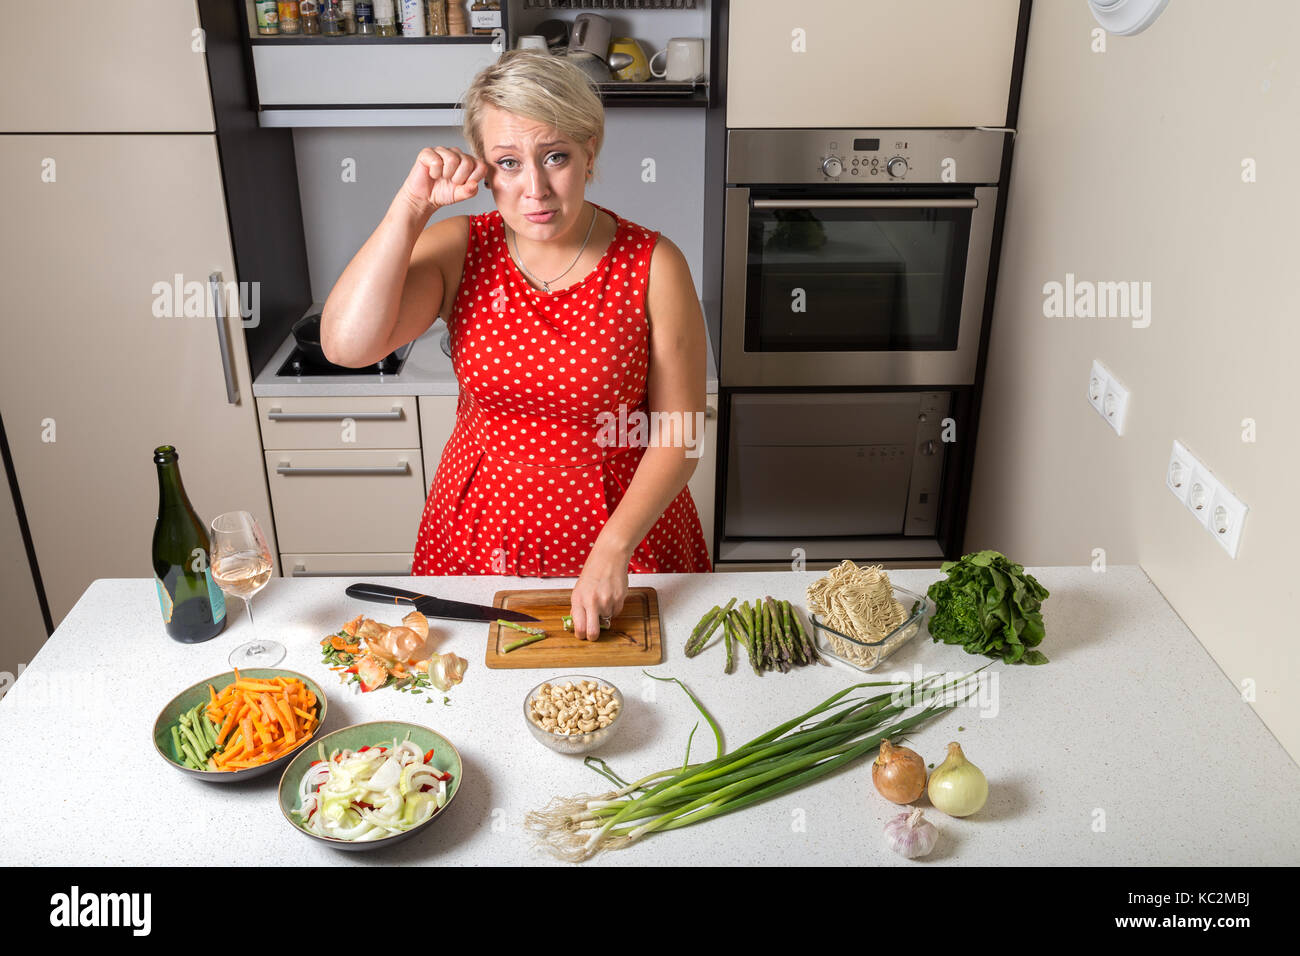 Female in kitchen cutting asparagus and rubbing her eye - Stock Image